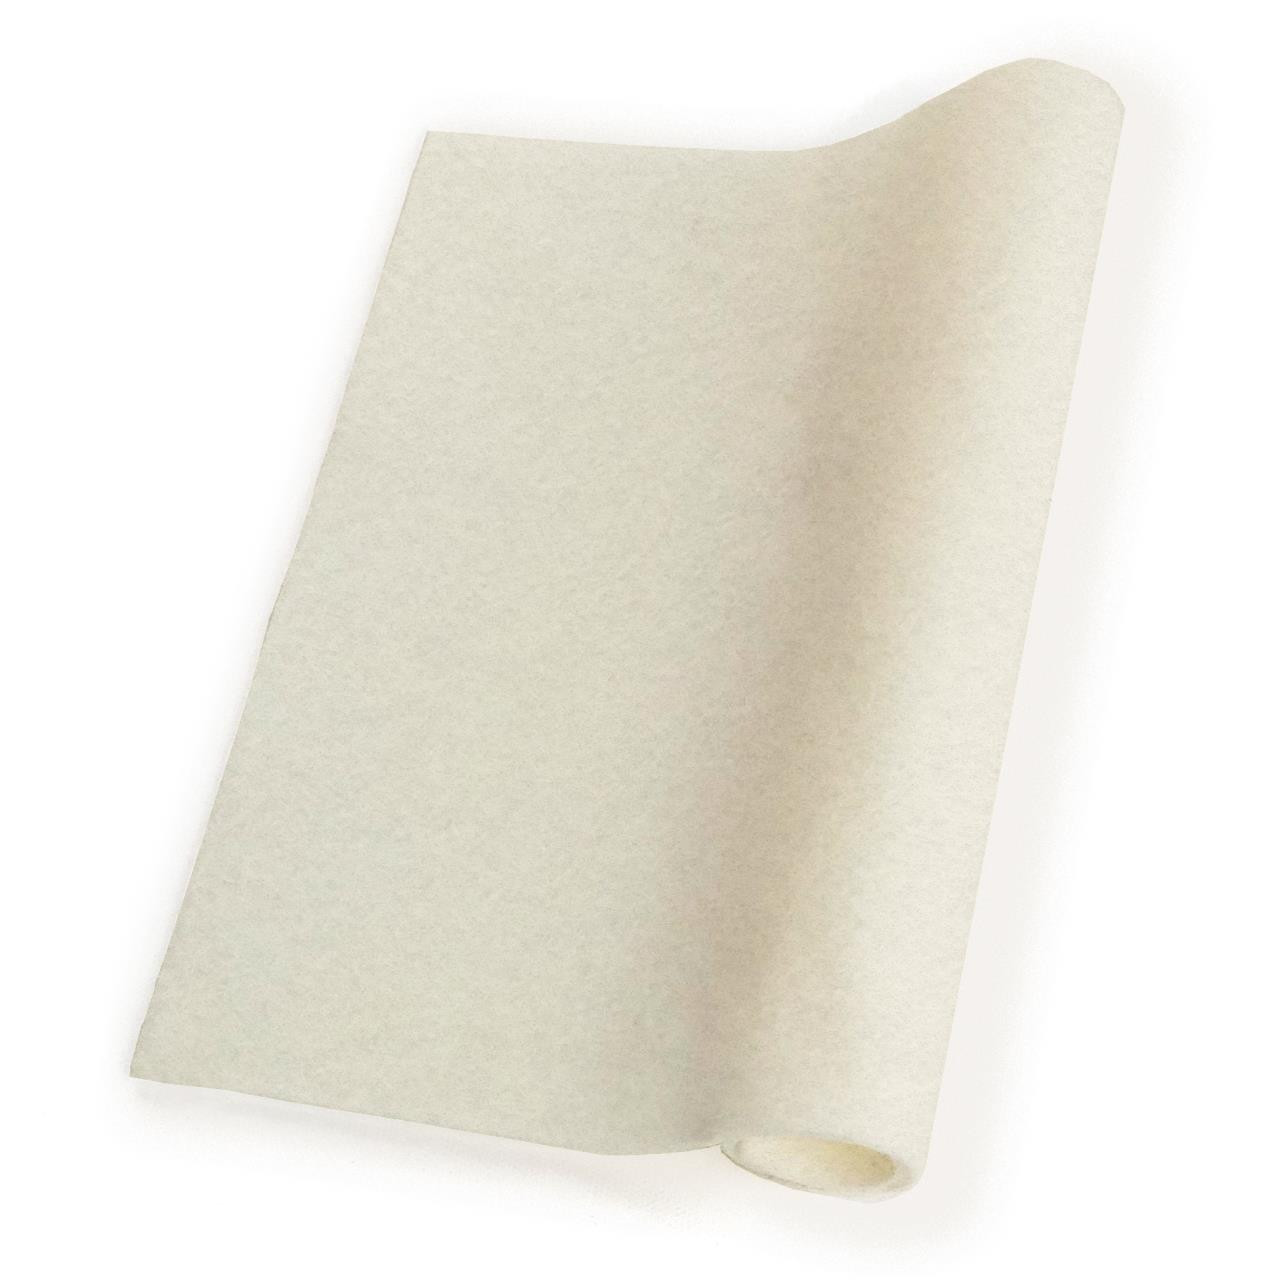 Winter White, Essentials By Ellen Wool Felt 9 X 12 - 5 Pk -